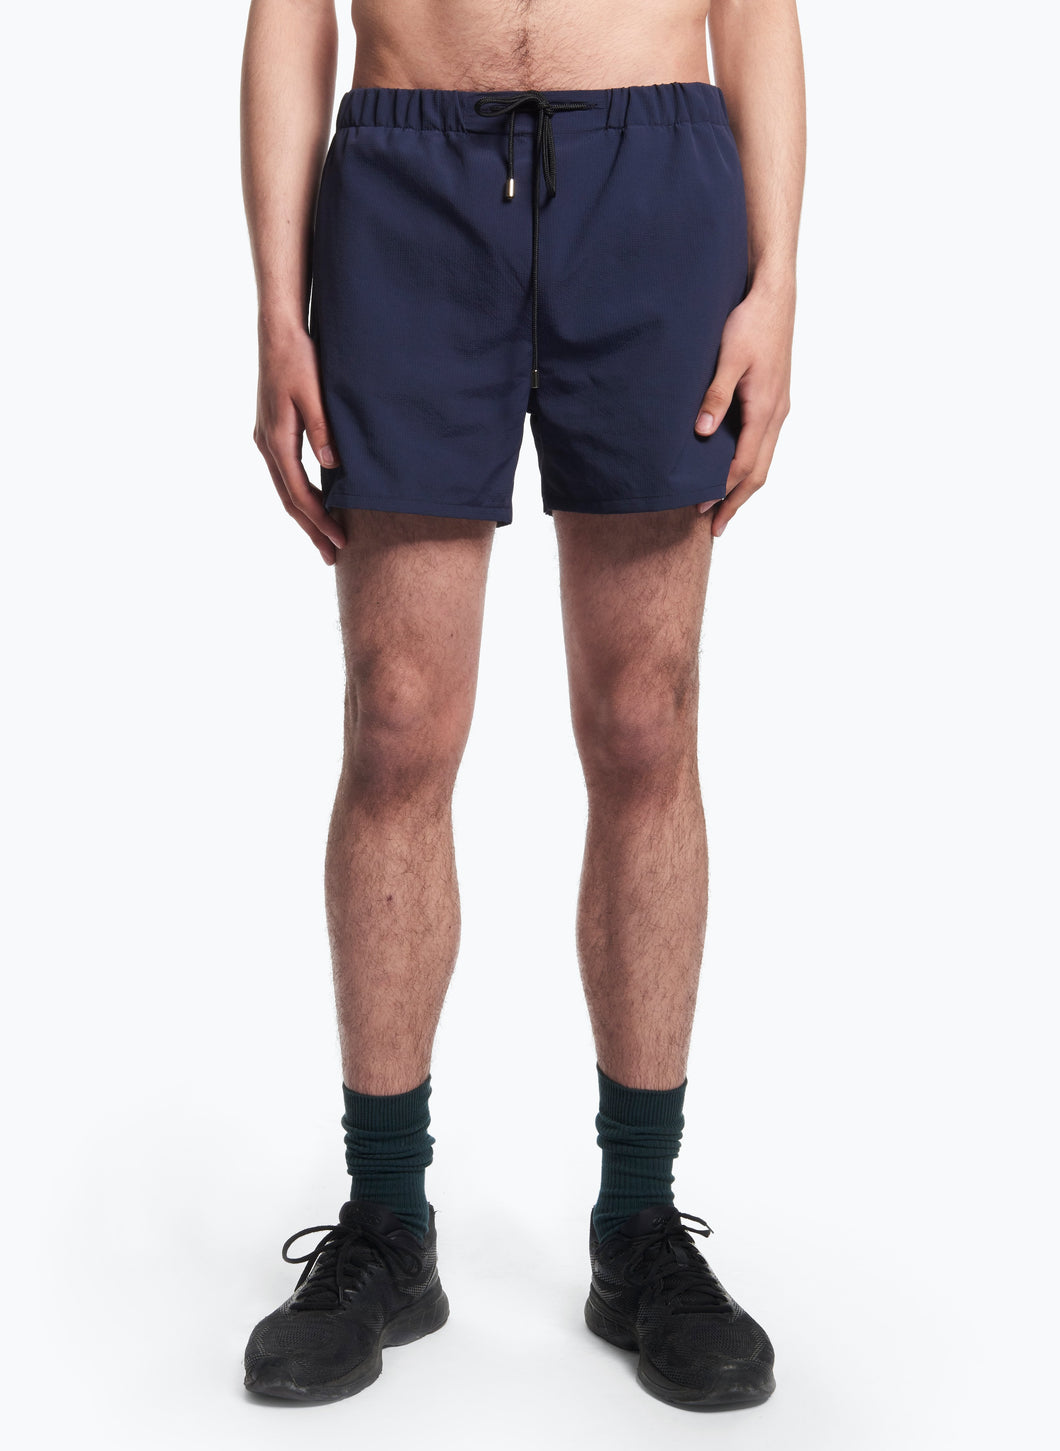 Swim Shorts with Italian Pockets in Navy Blue Ripstop